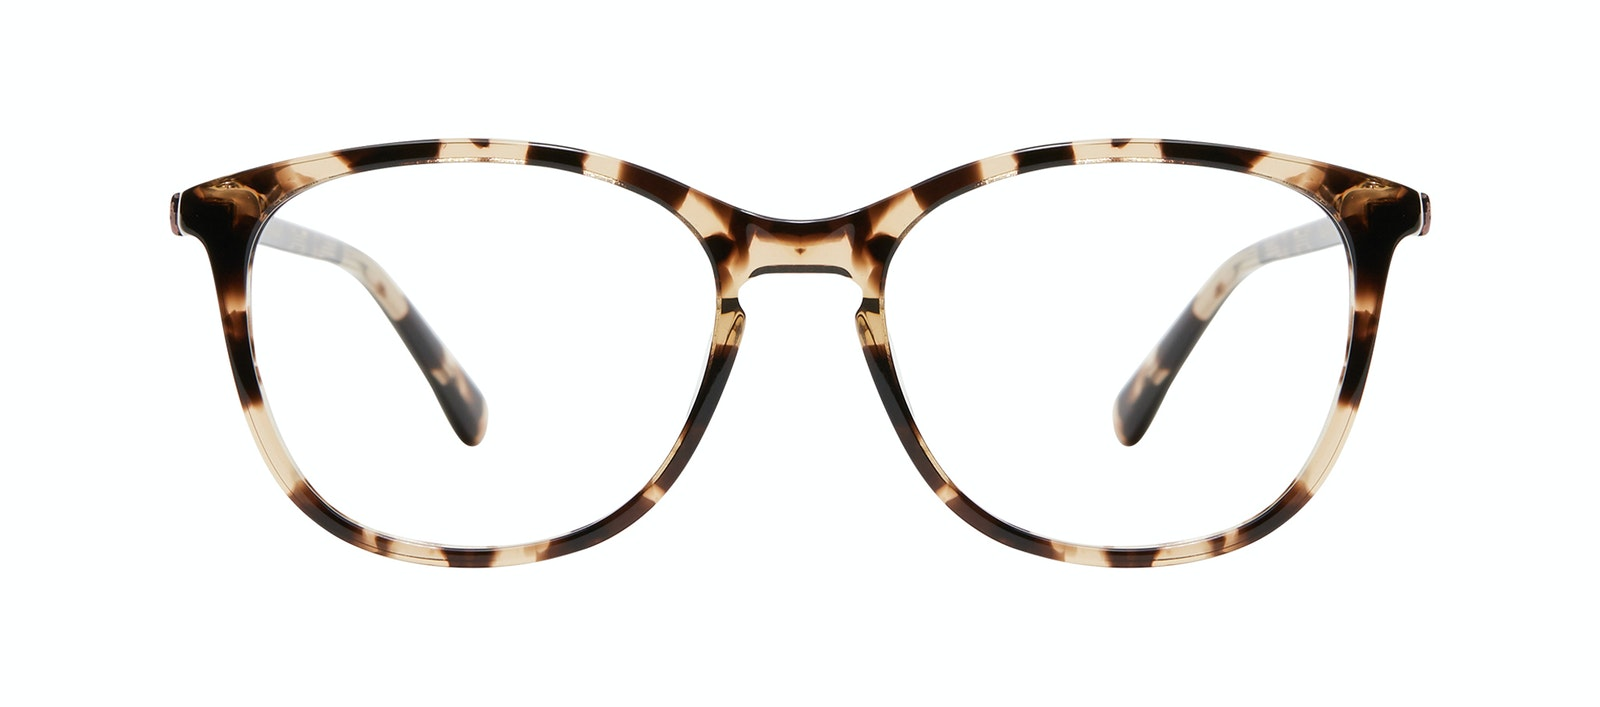 Affordable Fashion Glasses Rectangle Square Round Eyeglasses Women Nadine XL Snake Skin Front